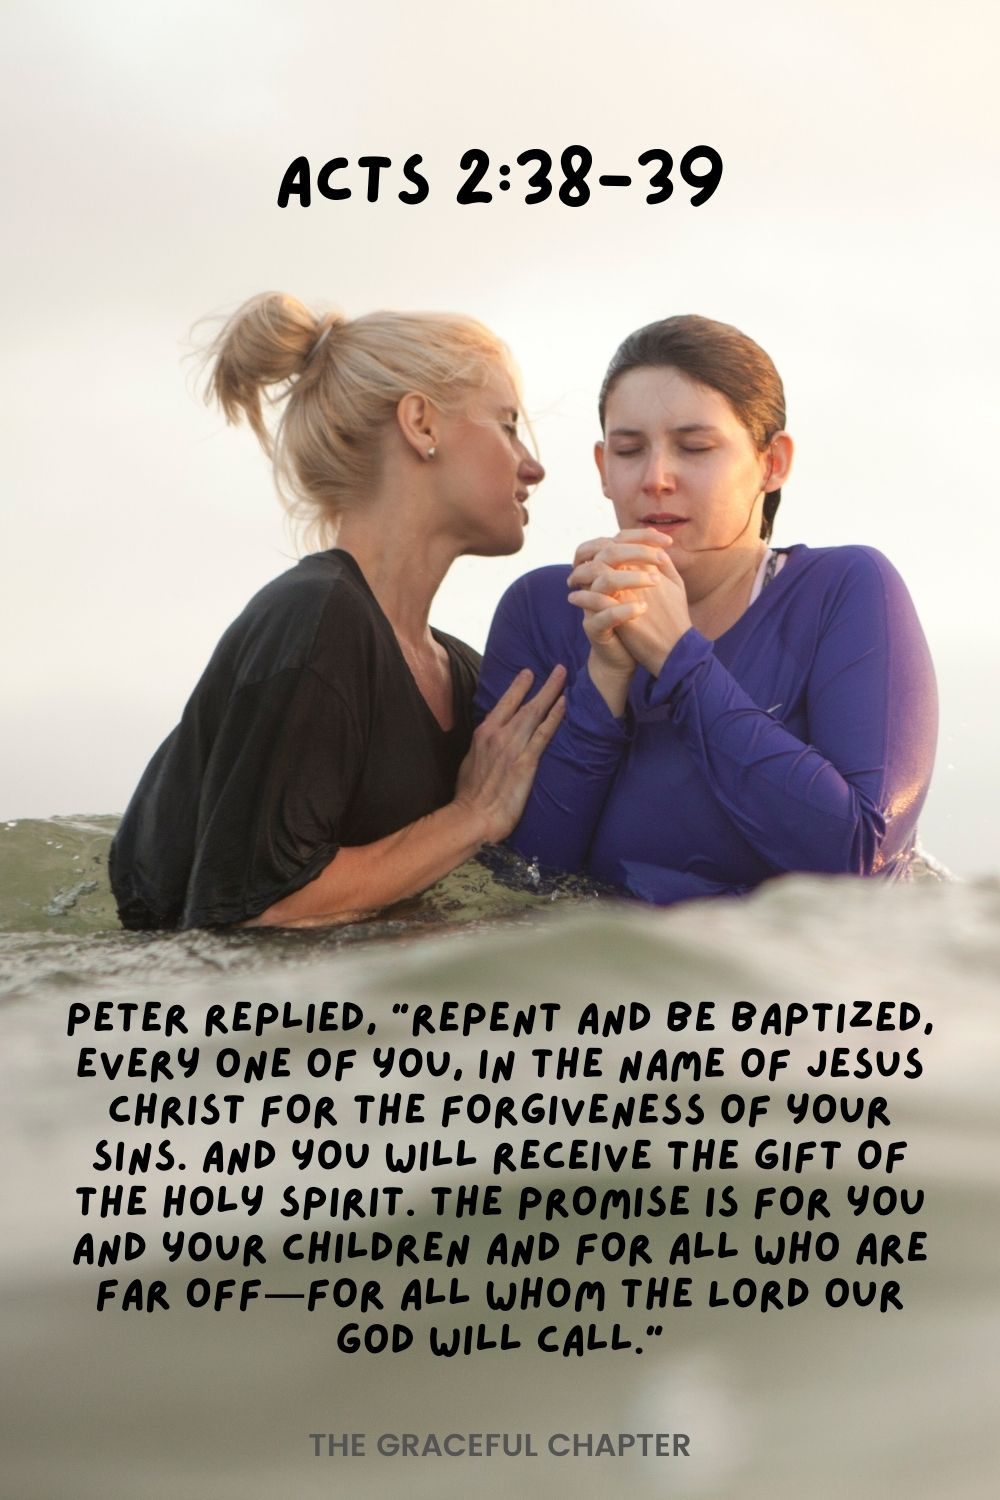 """Peter replied, """"Repent and be baptized, every one of you, in the name of Jesus Christ for the forgiveness of your sins. And you will receive the gift of the Holy Spirit. The promise is for you and your children and for all who are far off for all whom the Lord our God will call."""" Acts 2:38-39"""